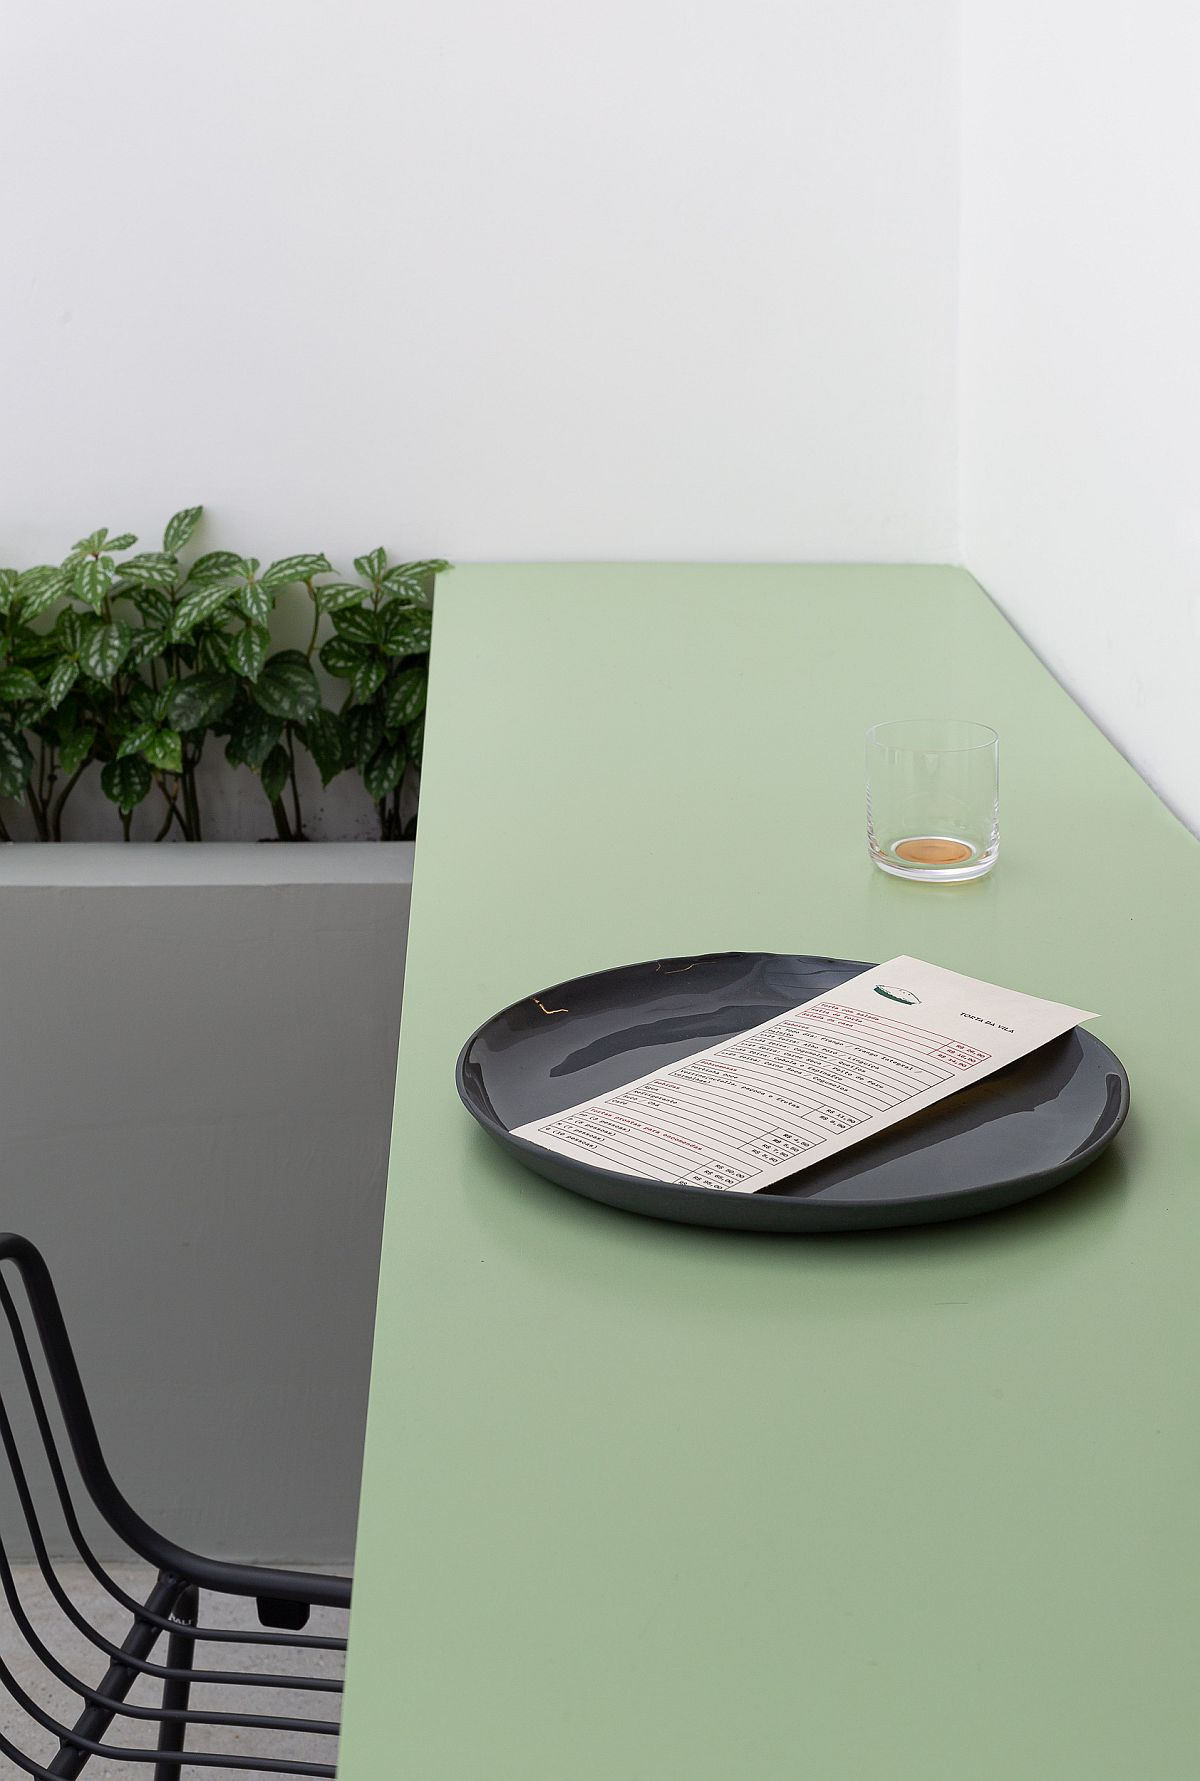 Minimal-table-and-seats-inside-the-restaurant-save-space-with-ease-33661